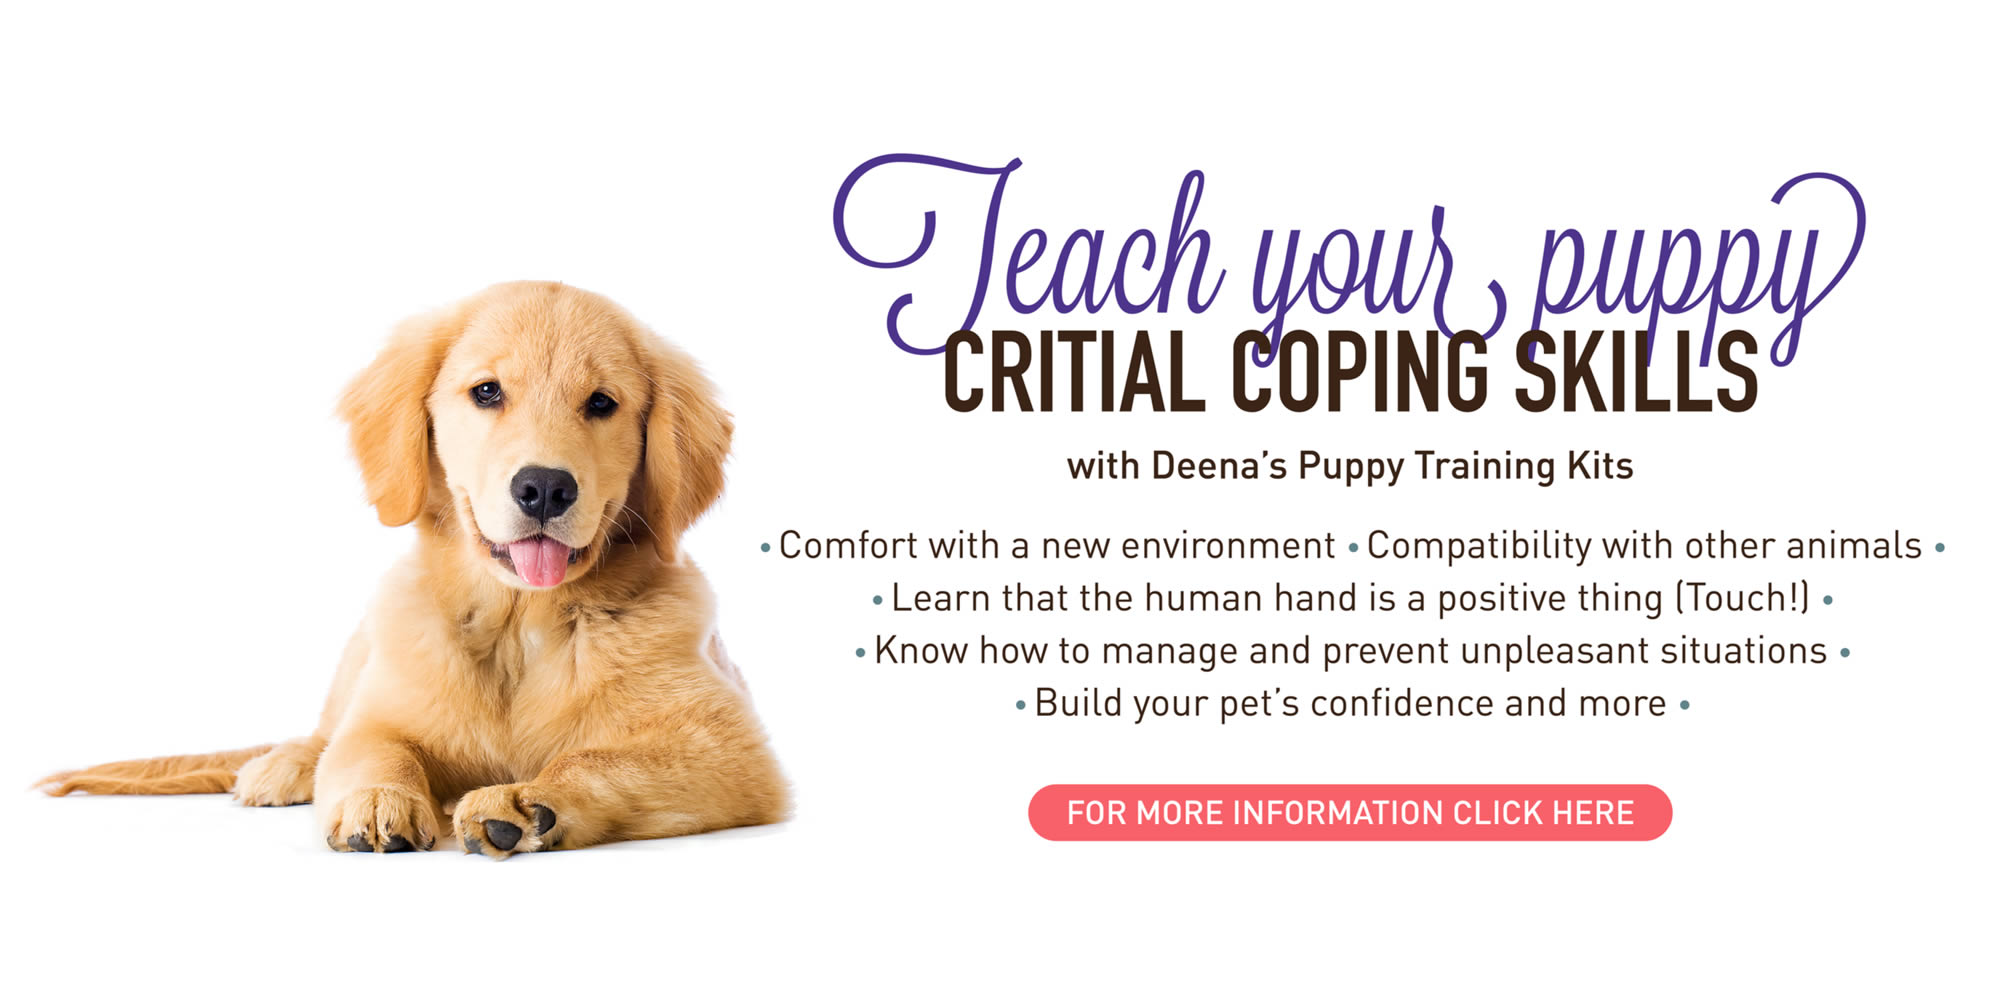 Puppy Training Kits